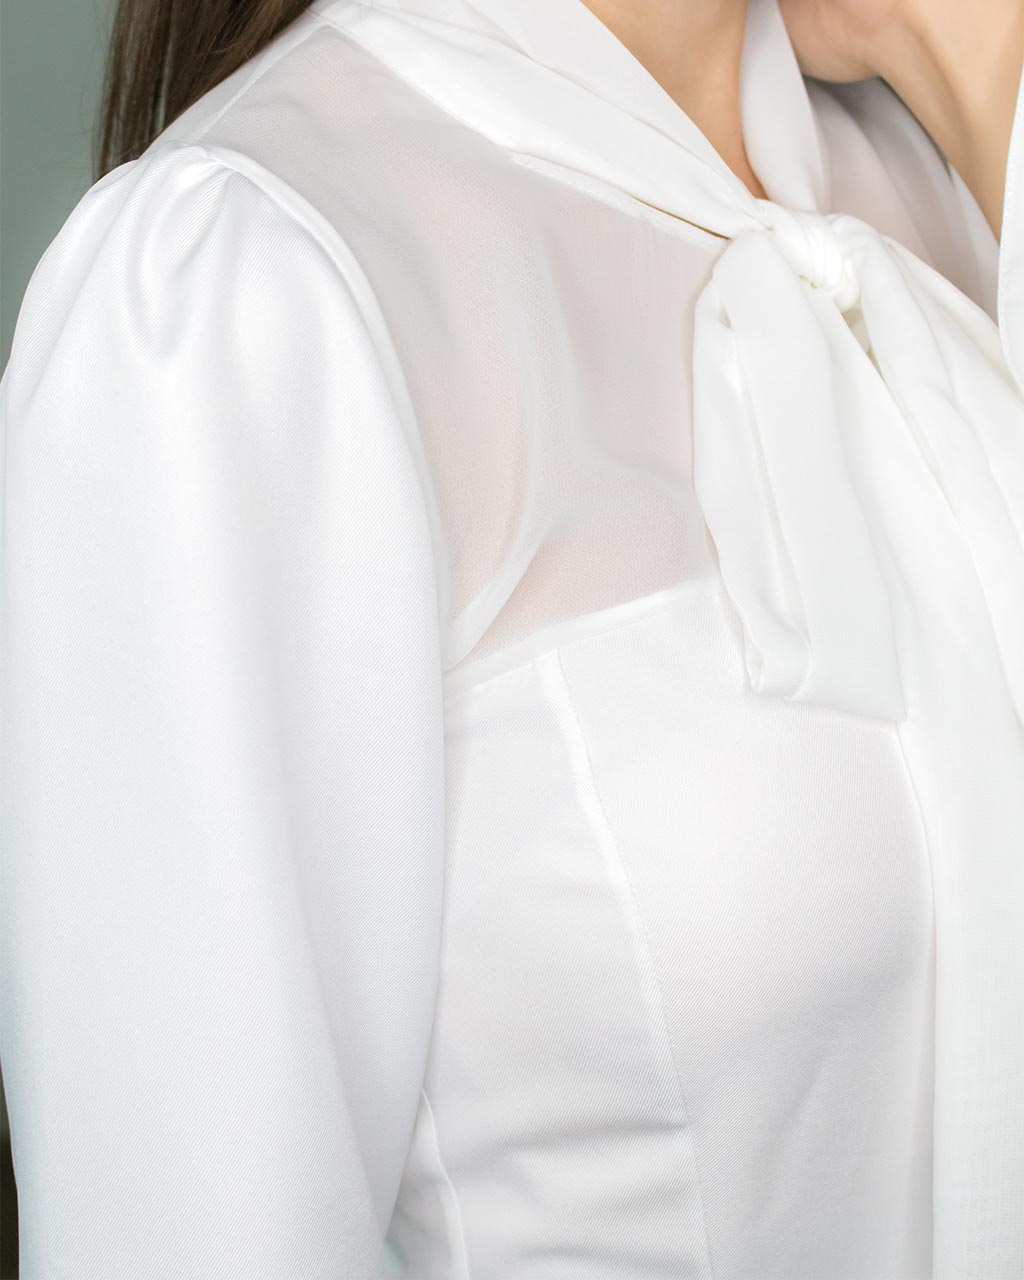 Classy elegant shoulder detail of white party going out office work peplum blouse by ADKN made from recycled PET bottles